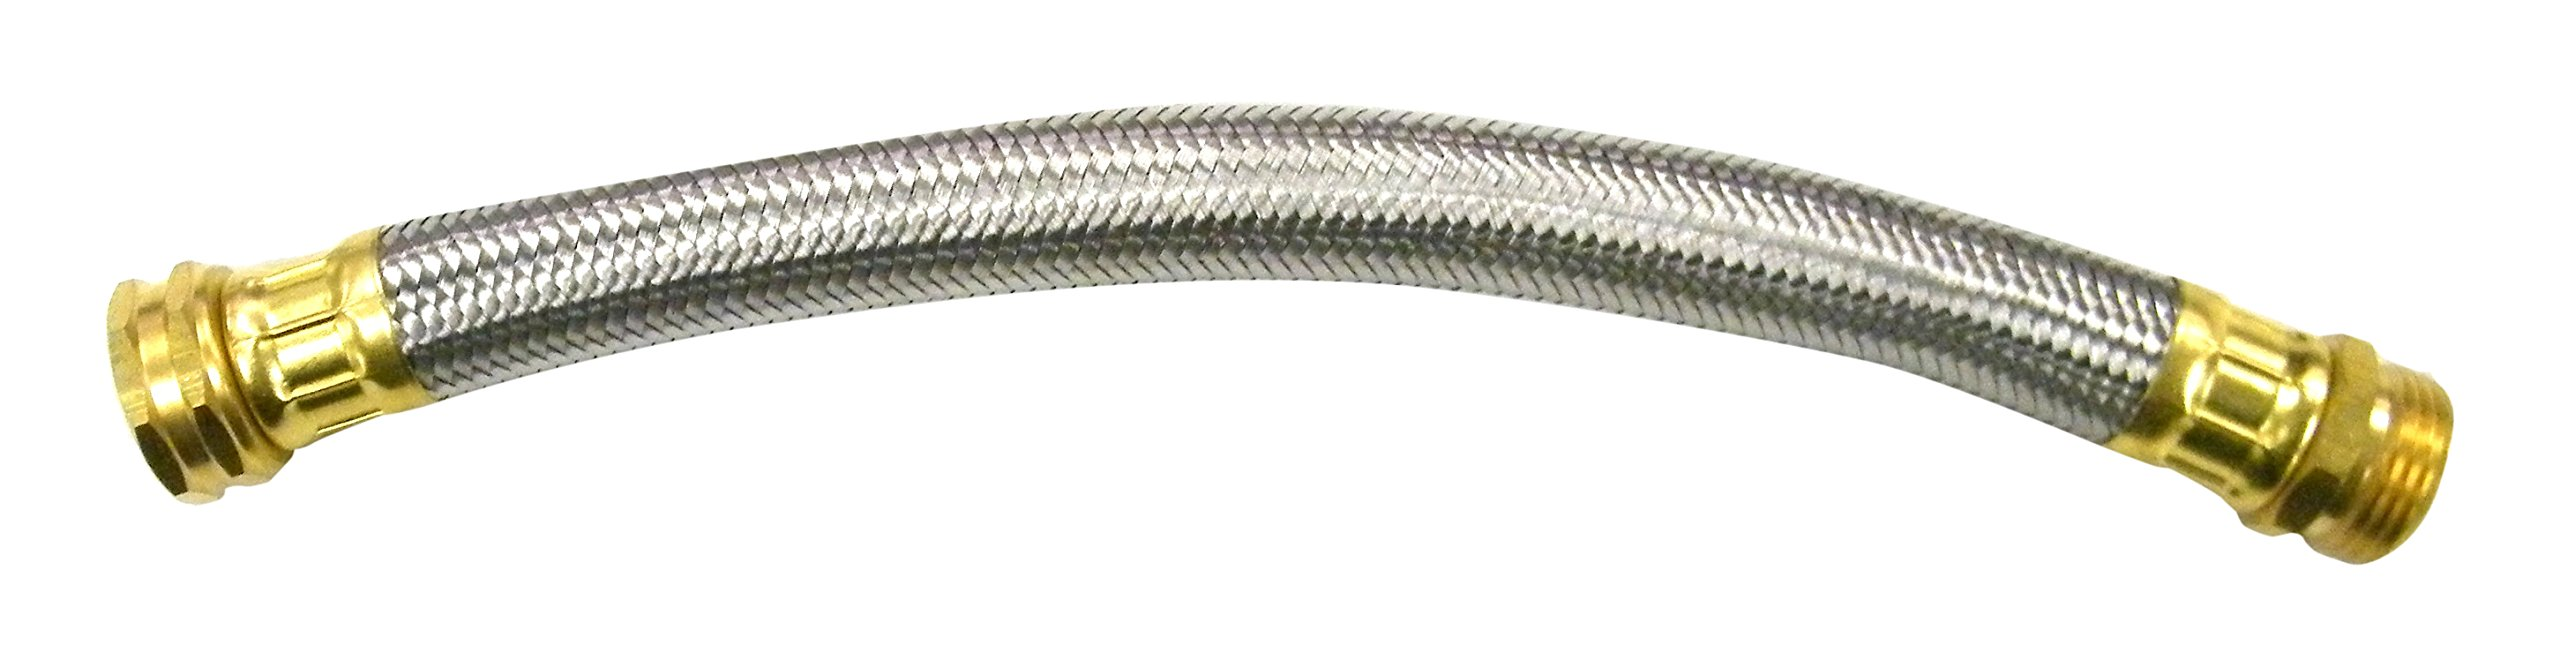 Continental 802-C Stainless Steel Hose Protector